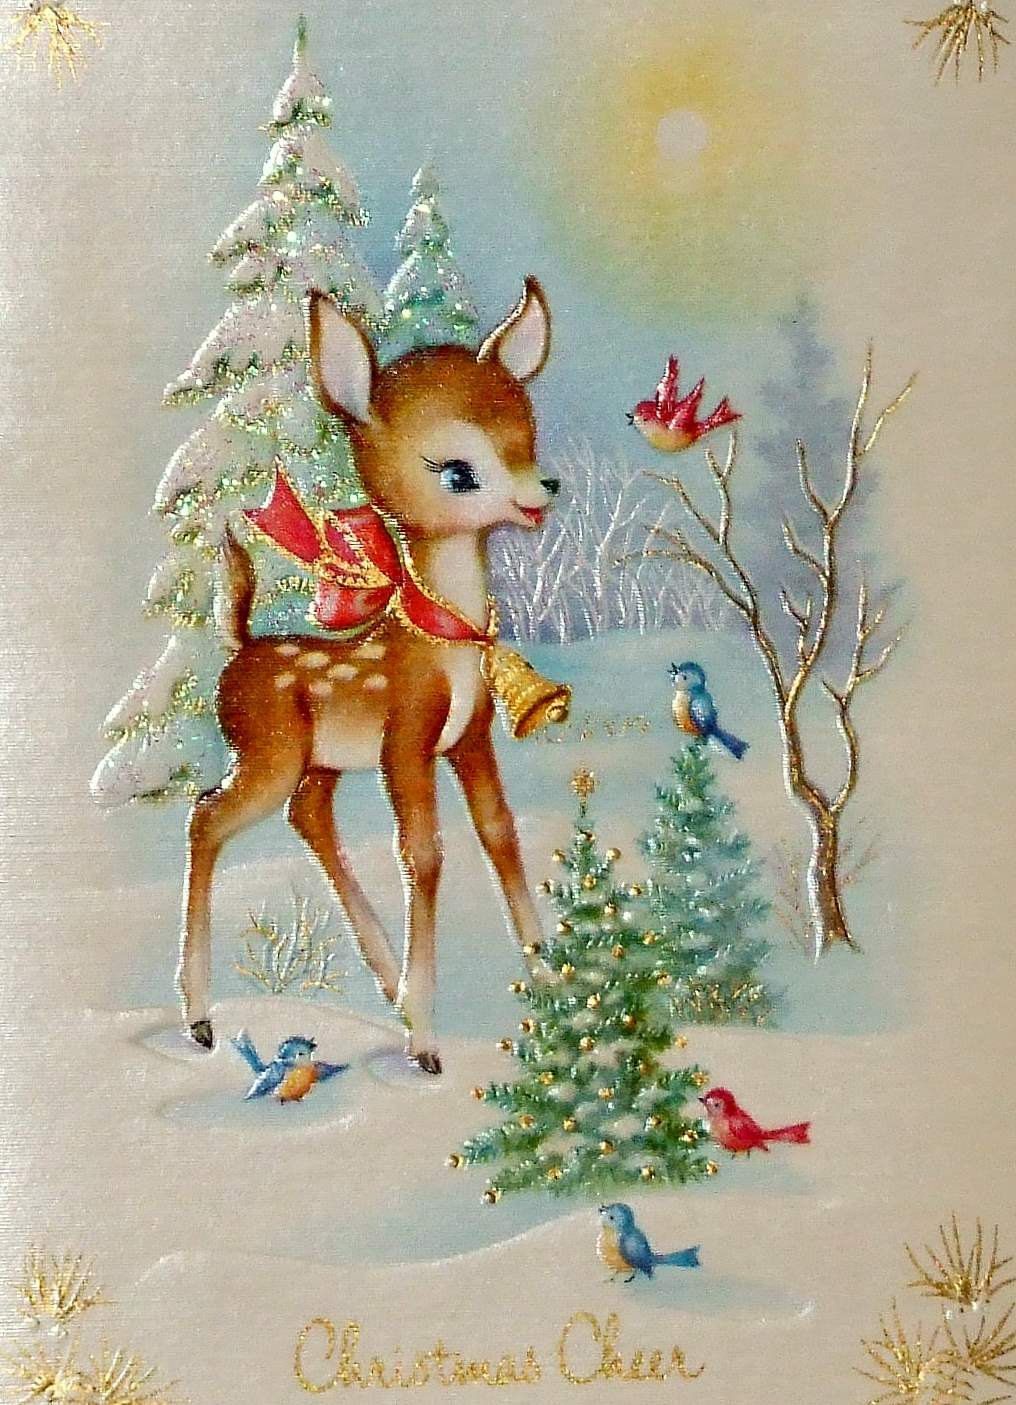 Christmas card. Made from a vintage Illustration. Rudolph